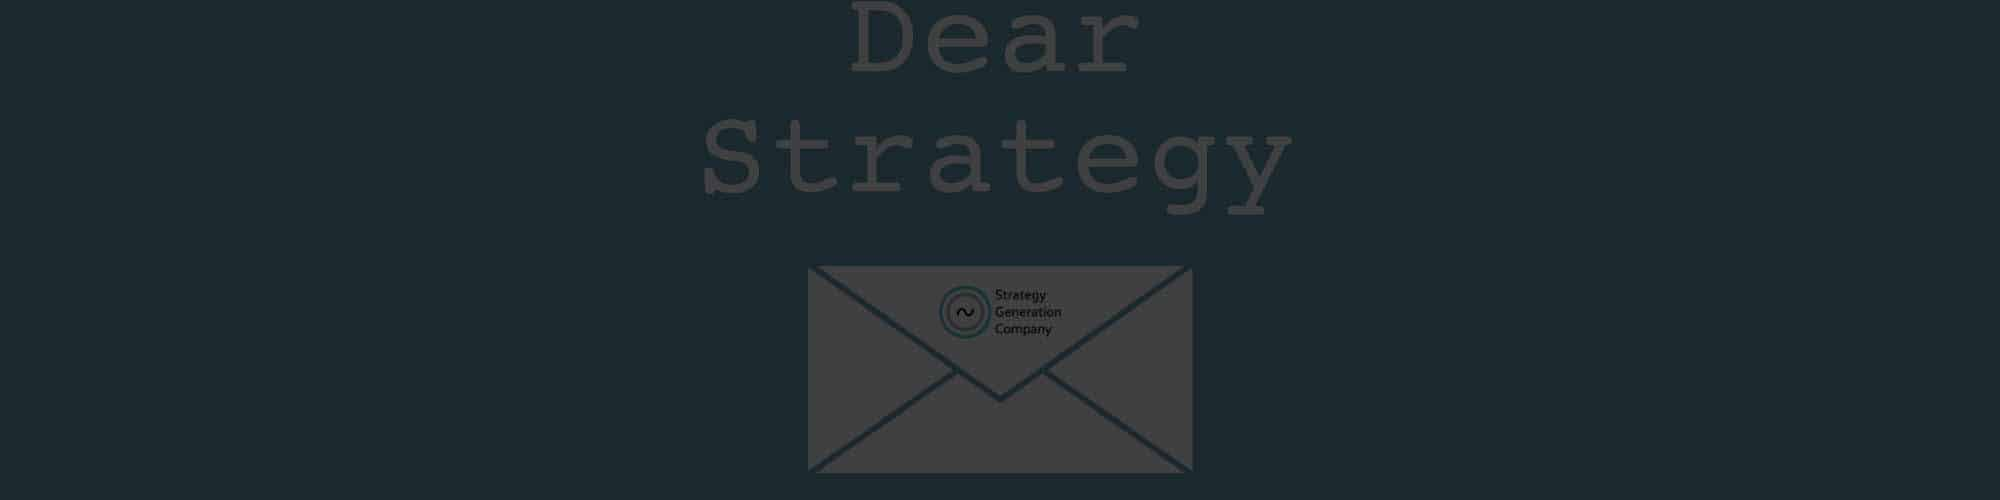 Dear Strategy - Answering Your Questions About Product and Business Strategy